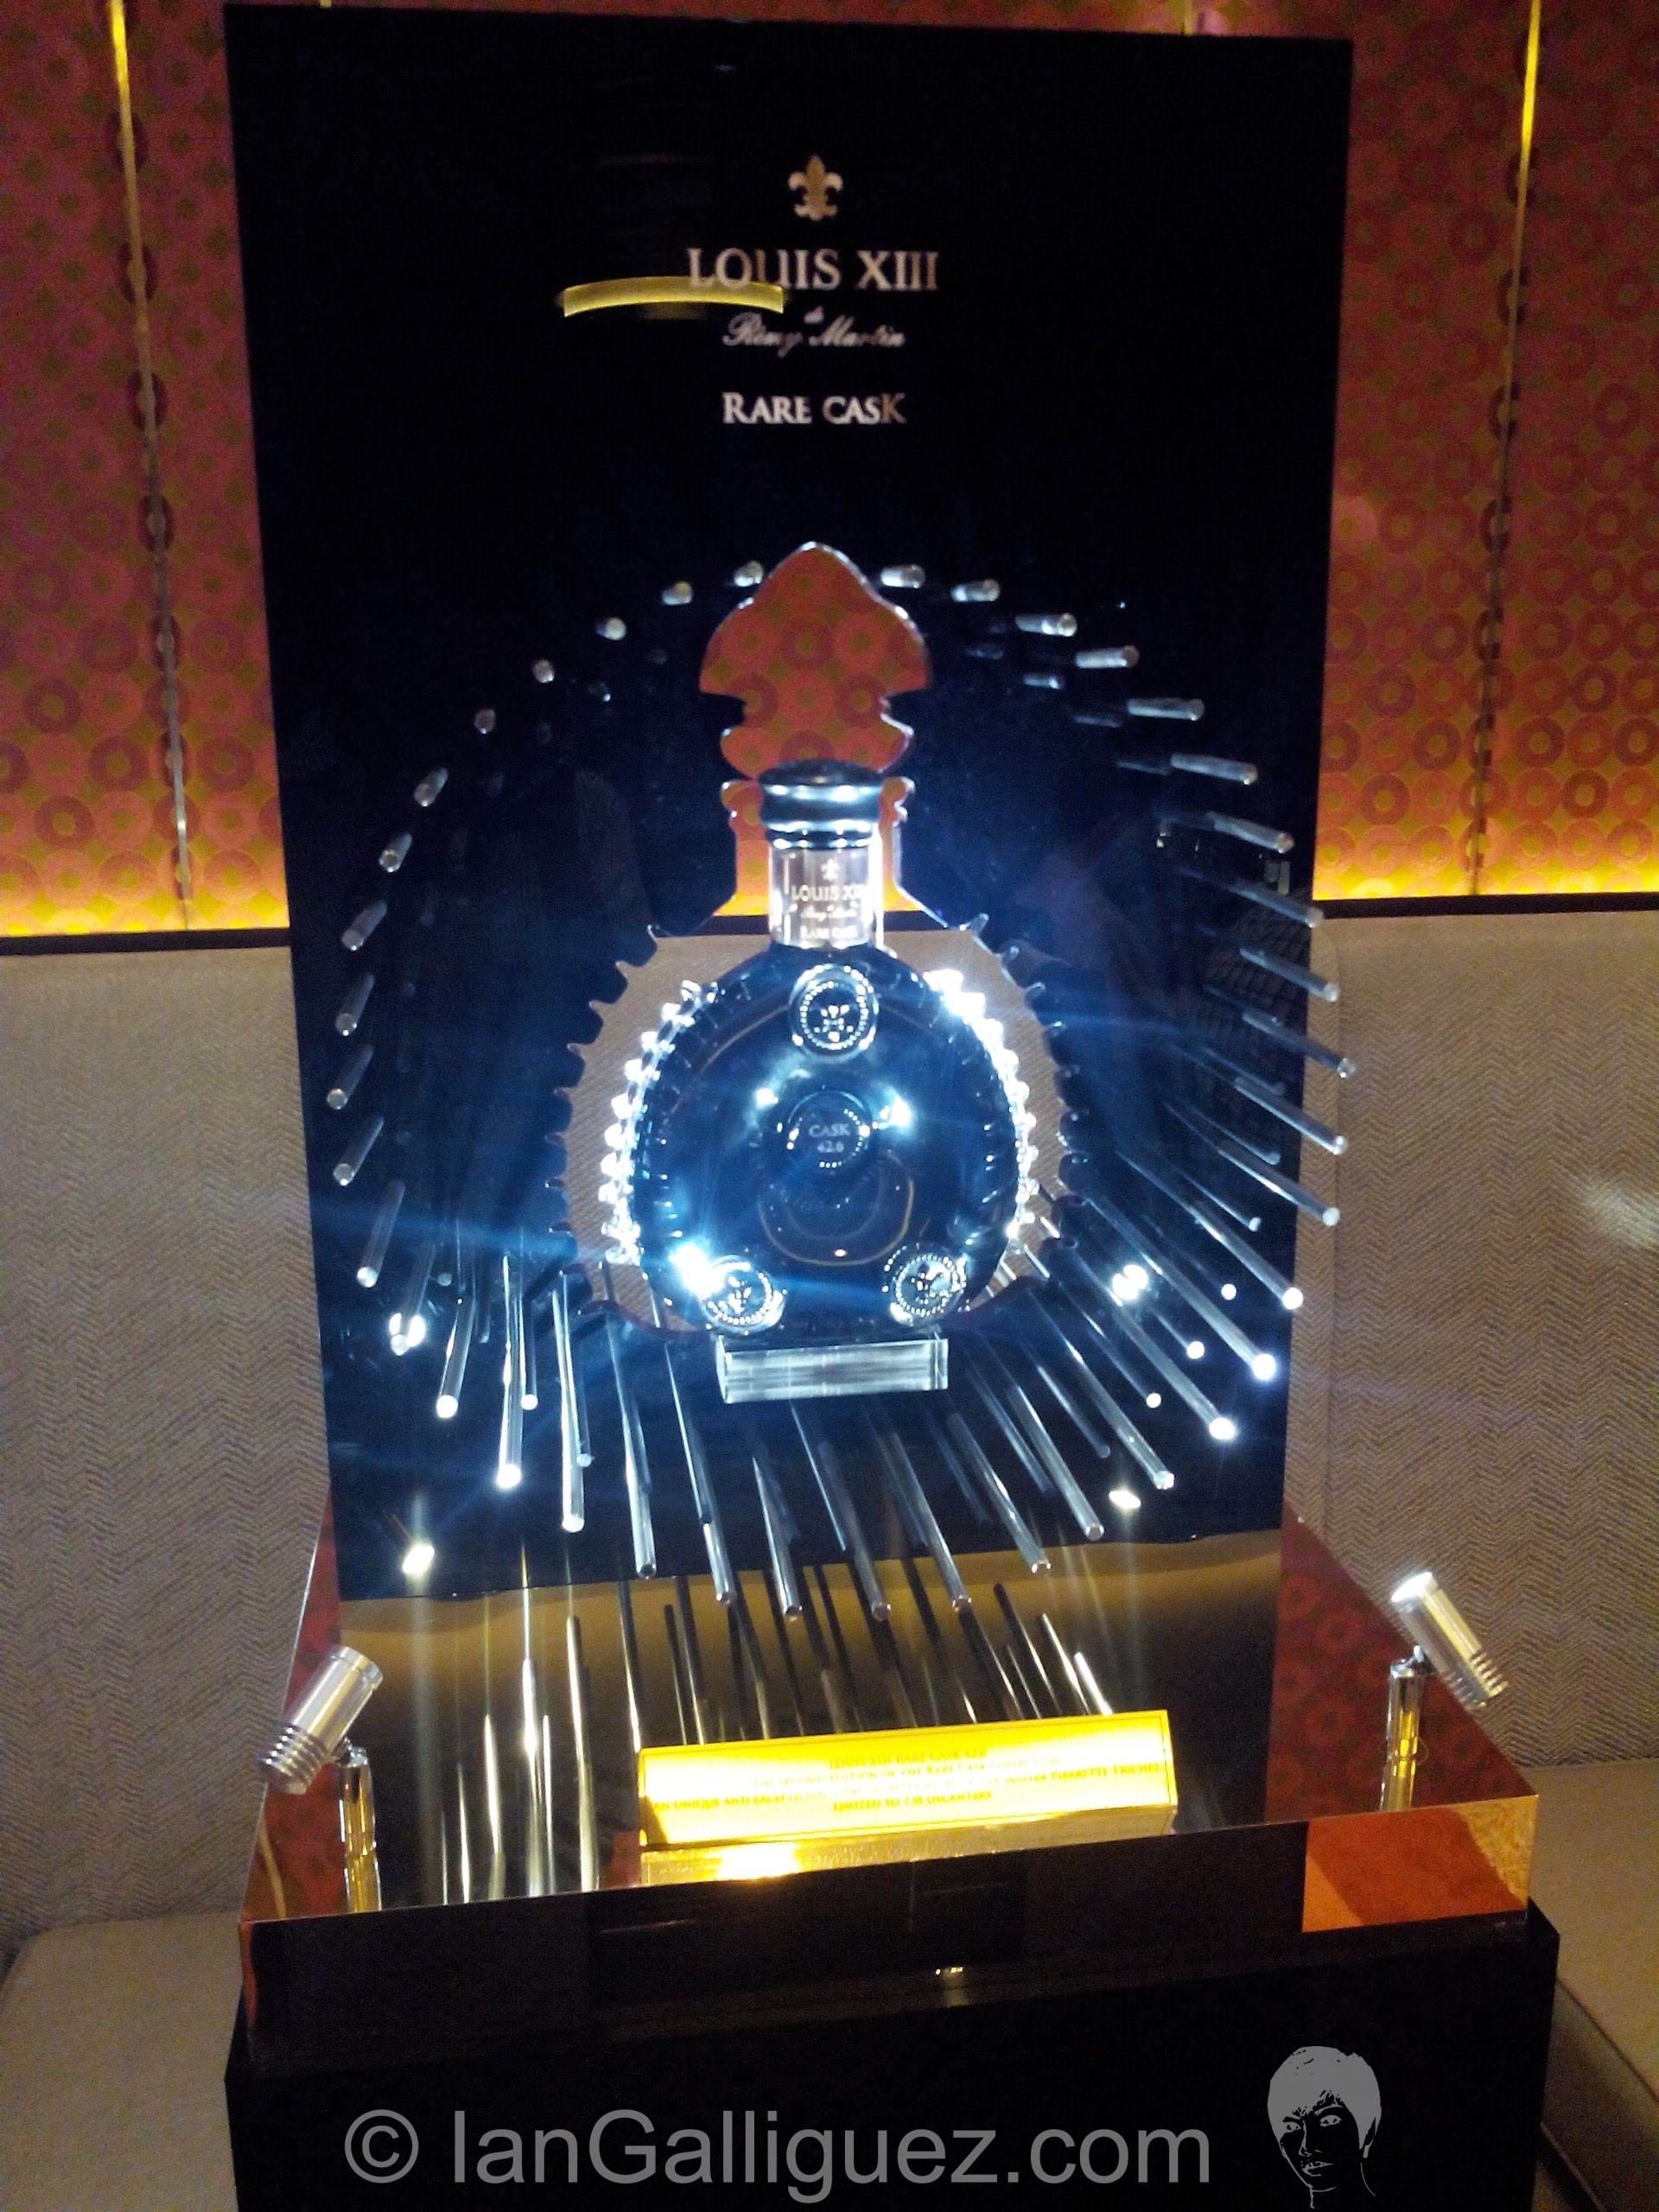 Louis xiii quest for a legend (28)